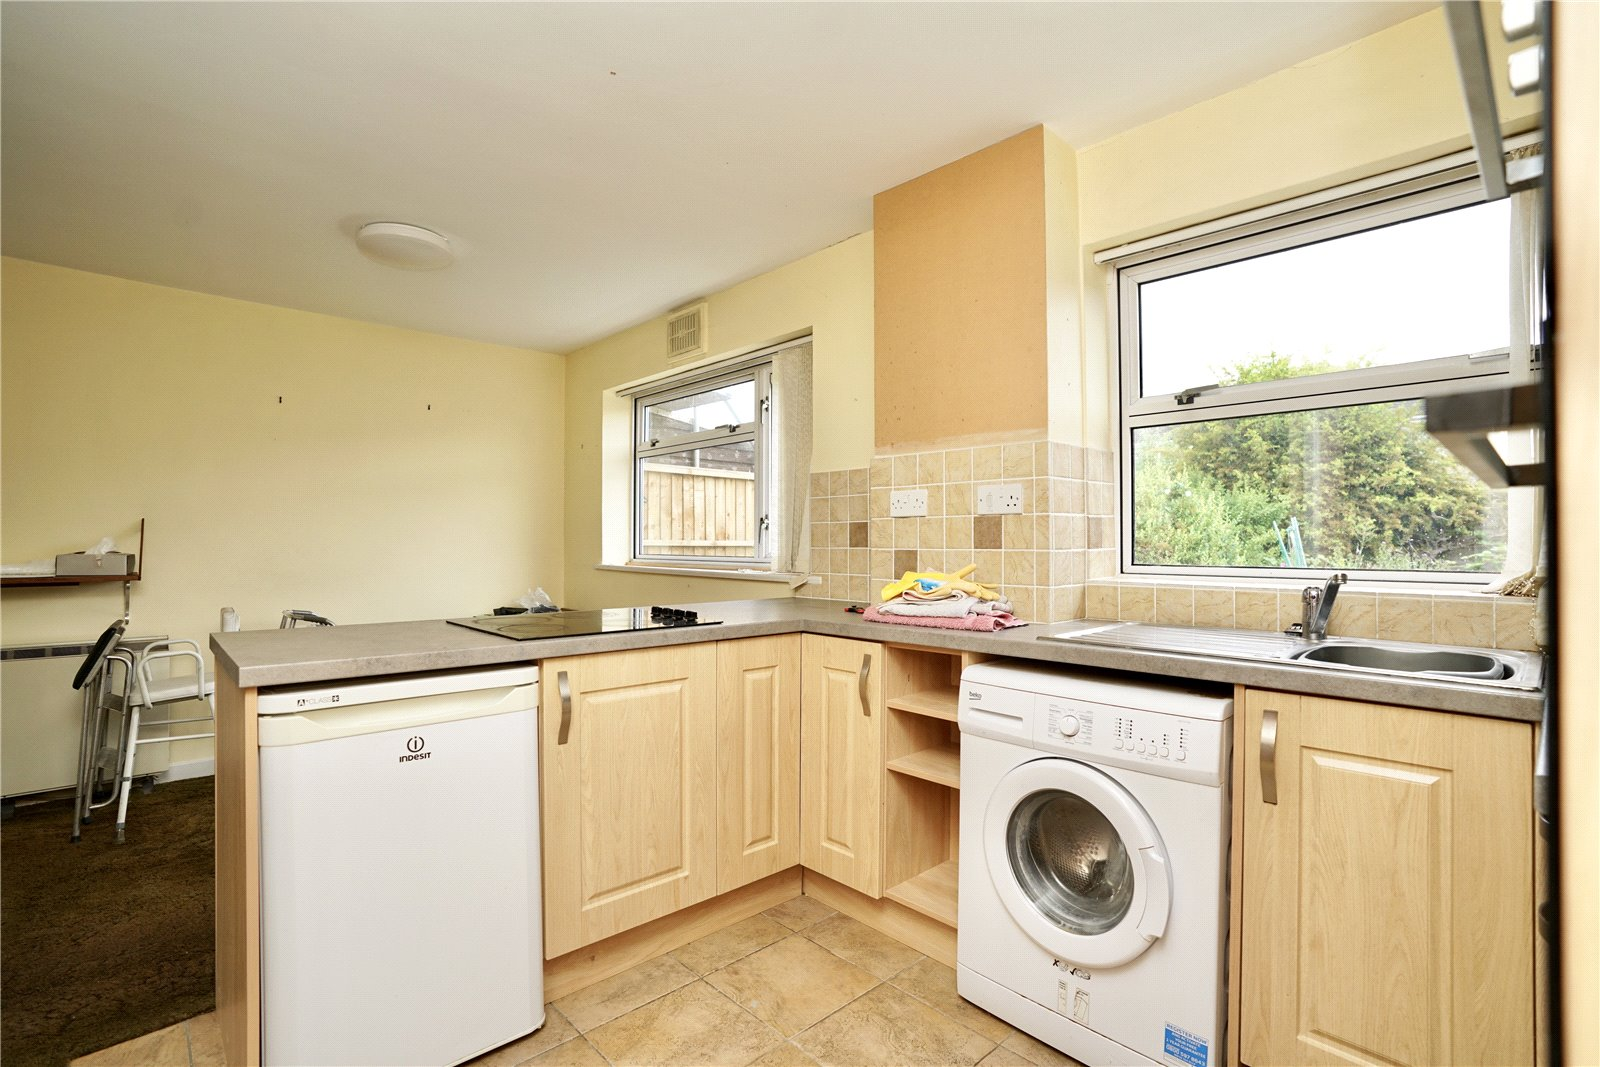 3 bed house for sale in Kenilworth Close, Eaton Socon  - Property Image 3